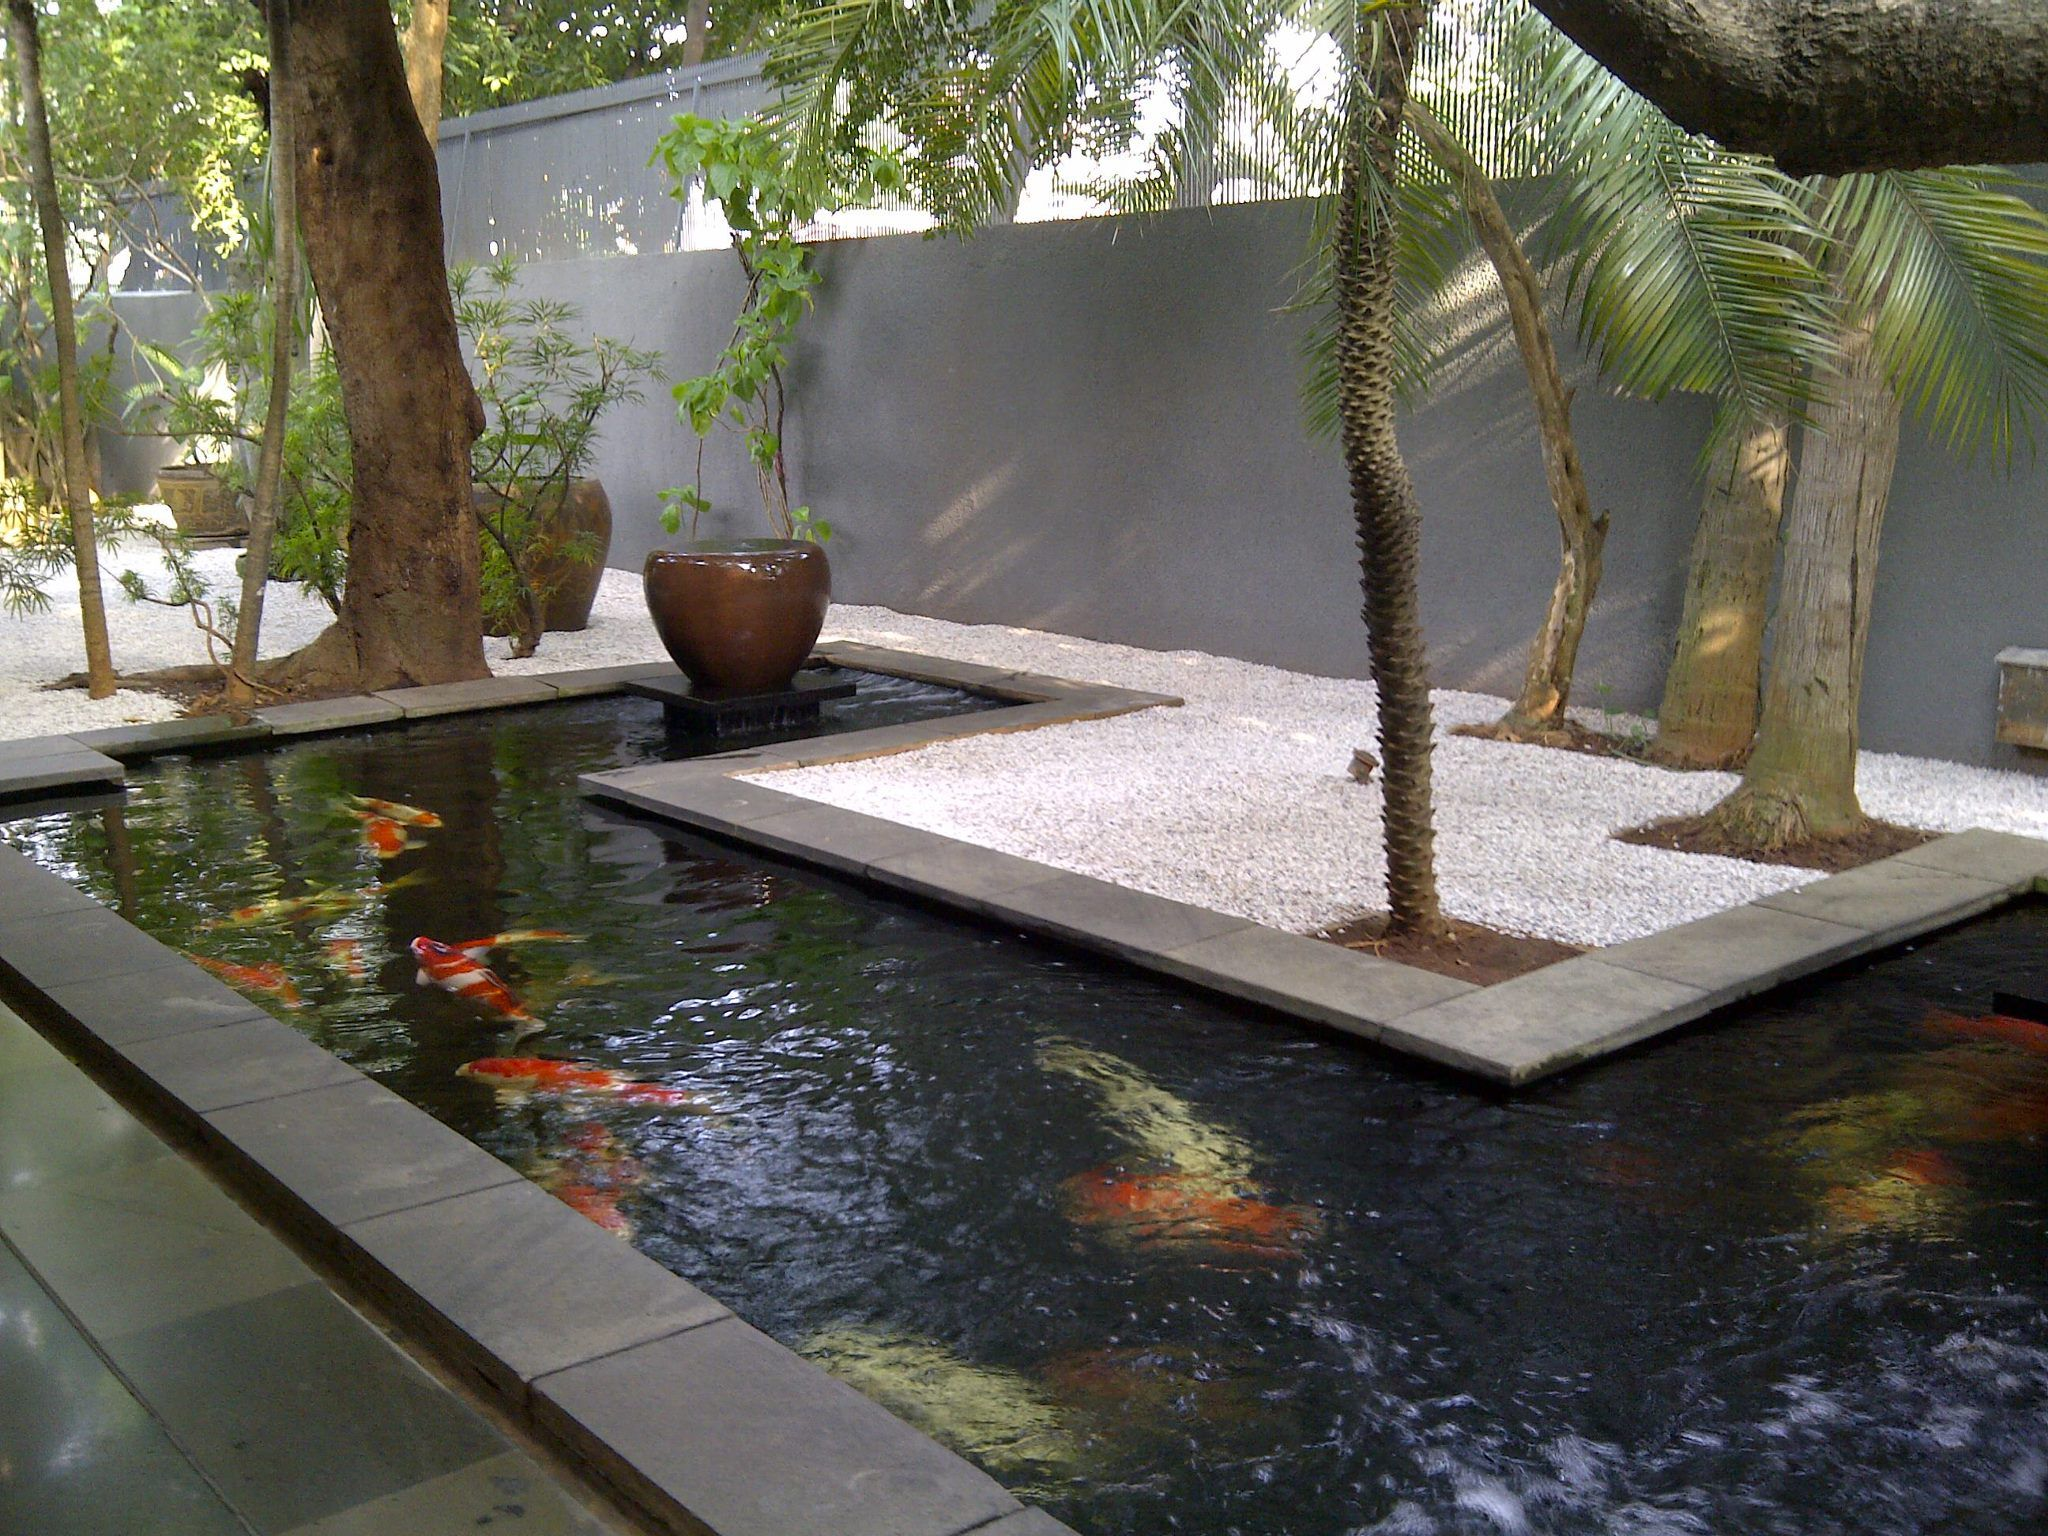 A Sleek Modern Koi Pond